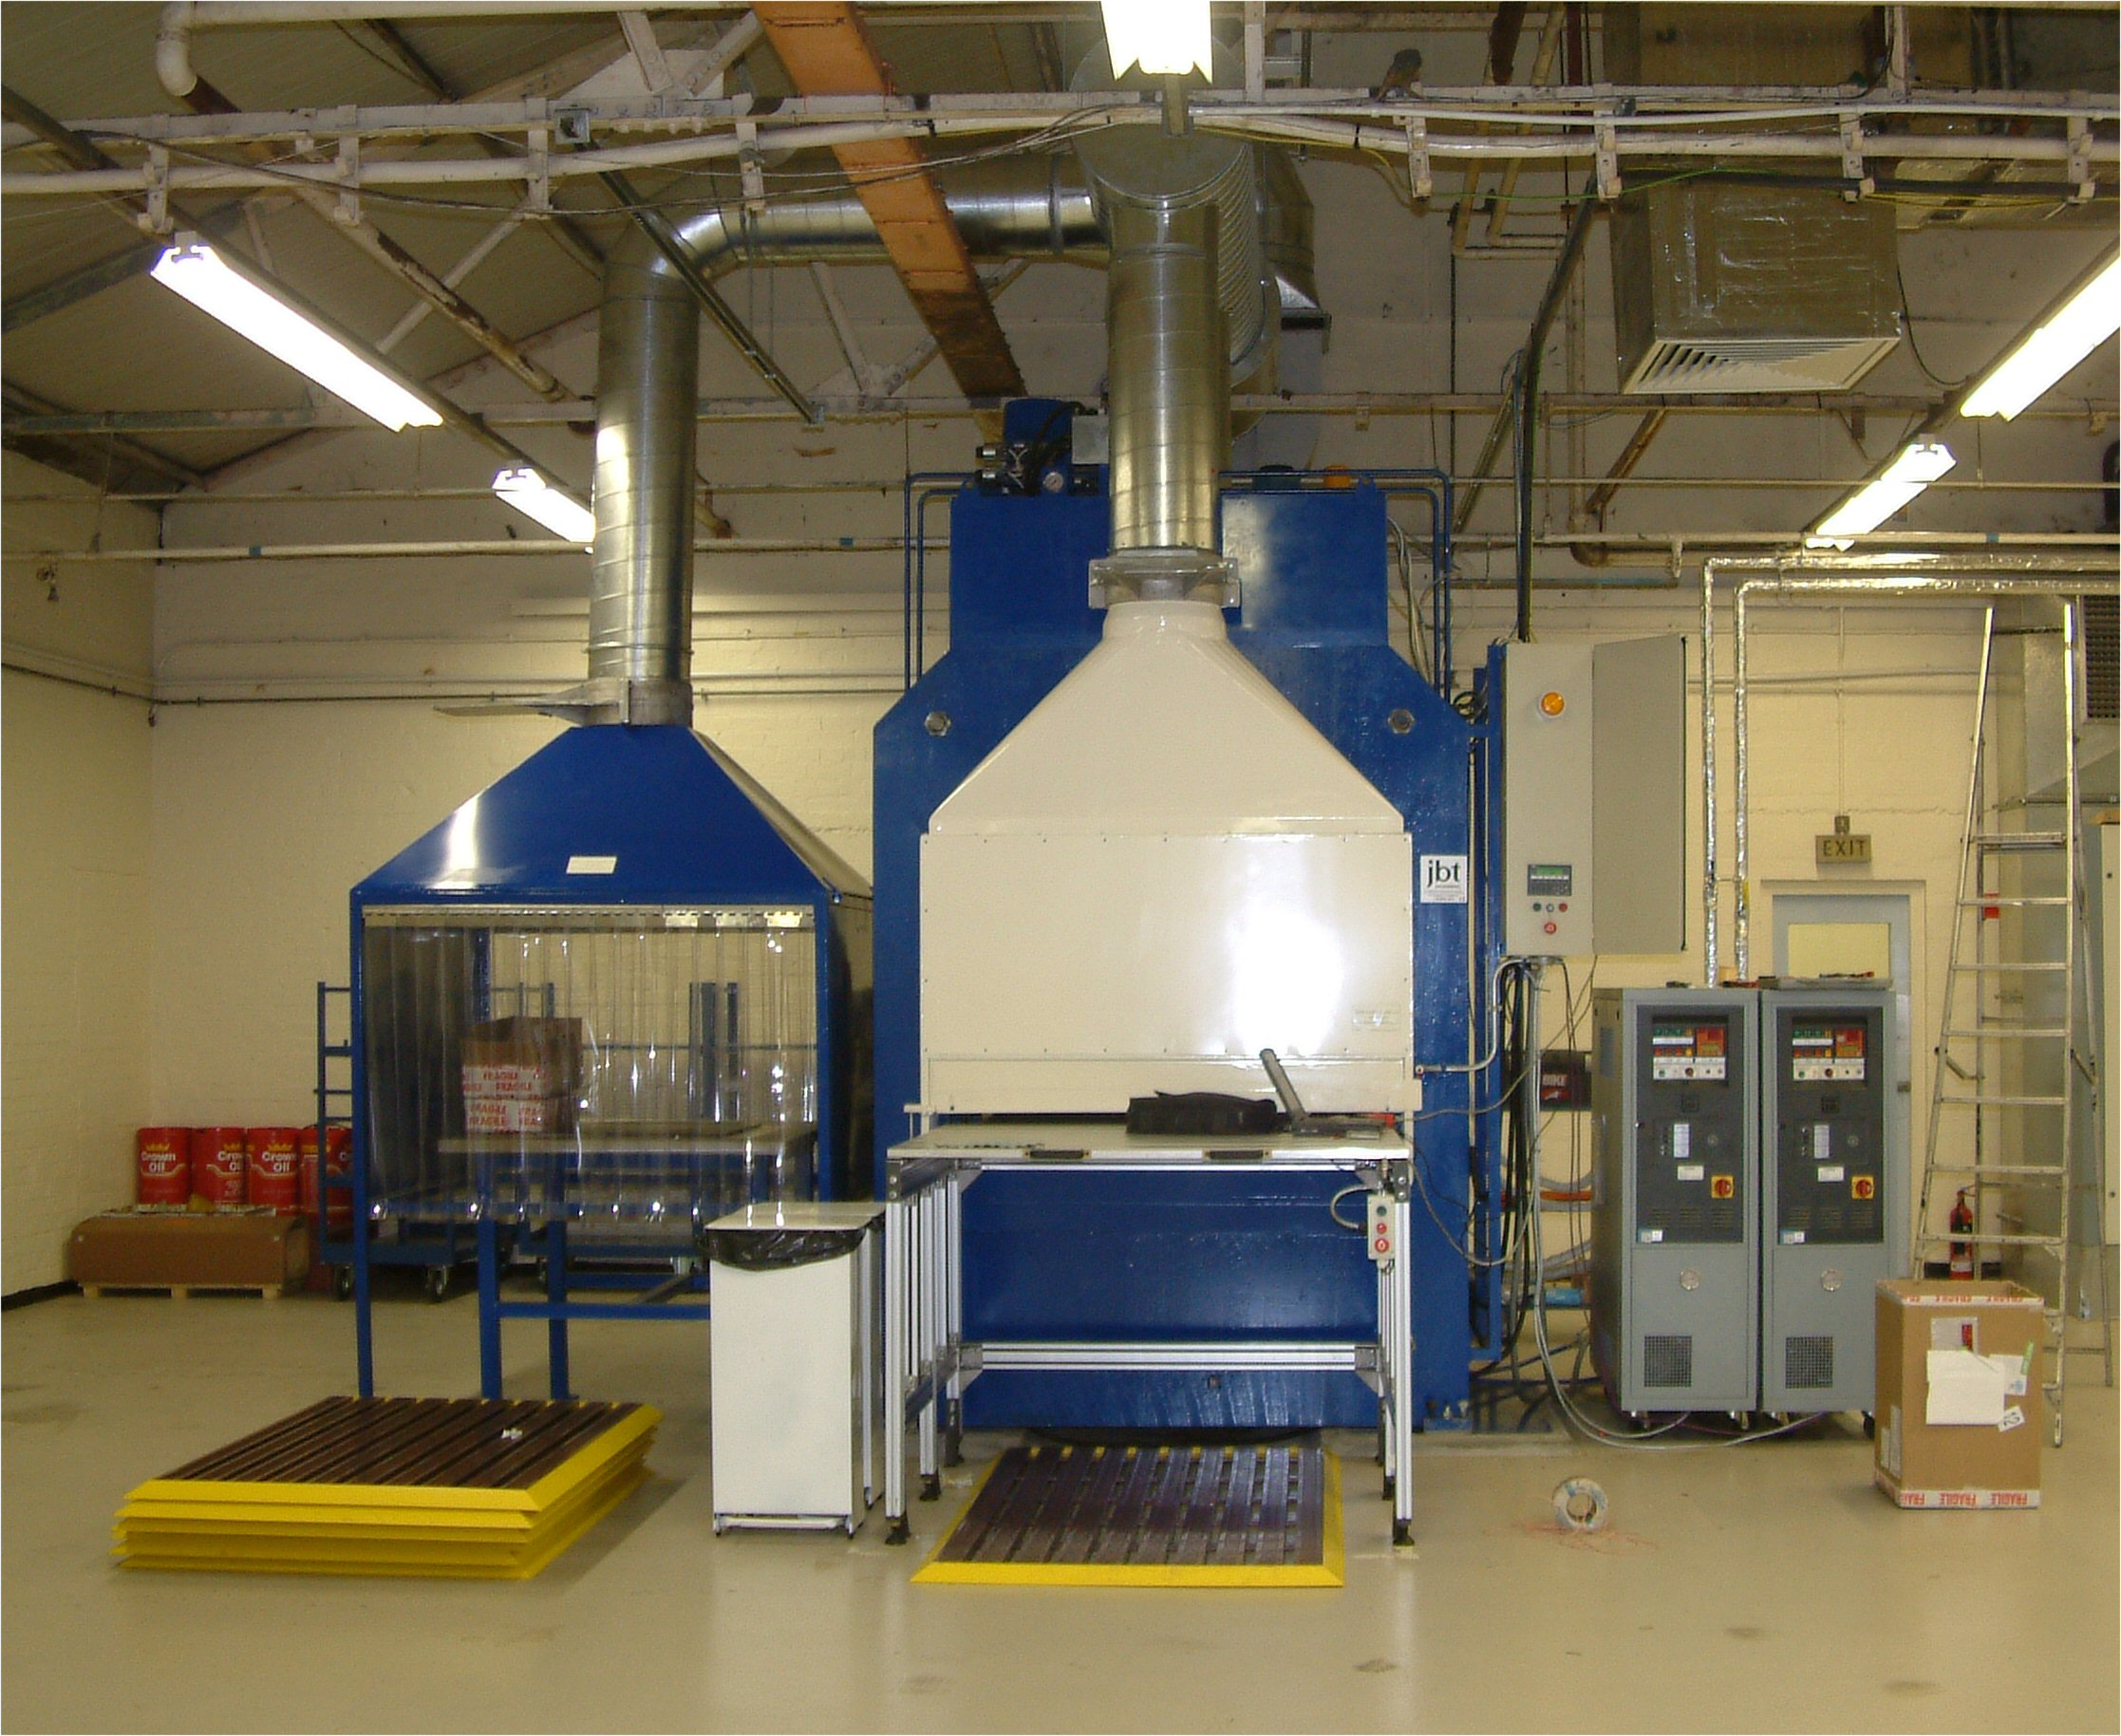 JBT Press and equipment Page - Machinery Design,Build and